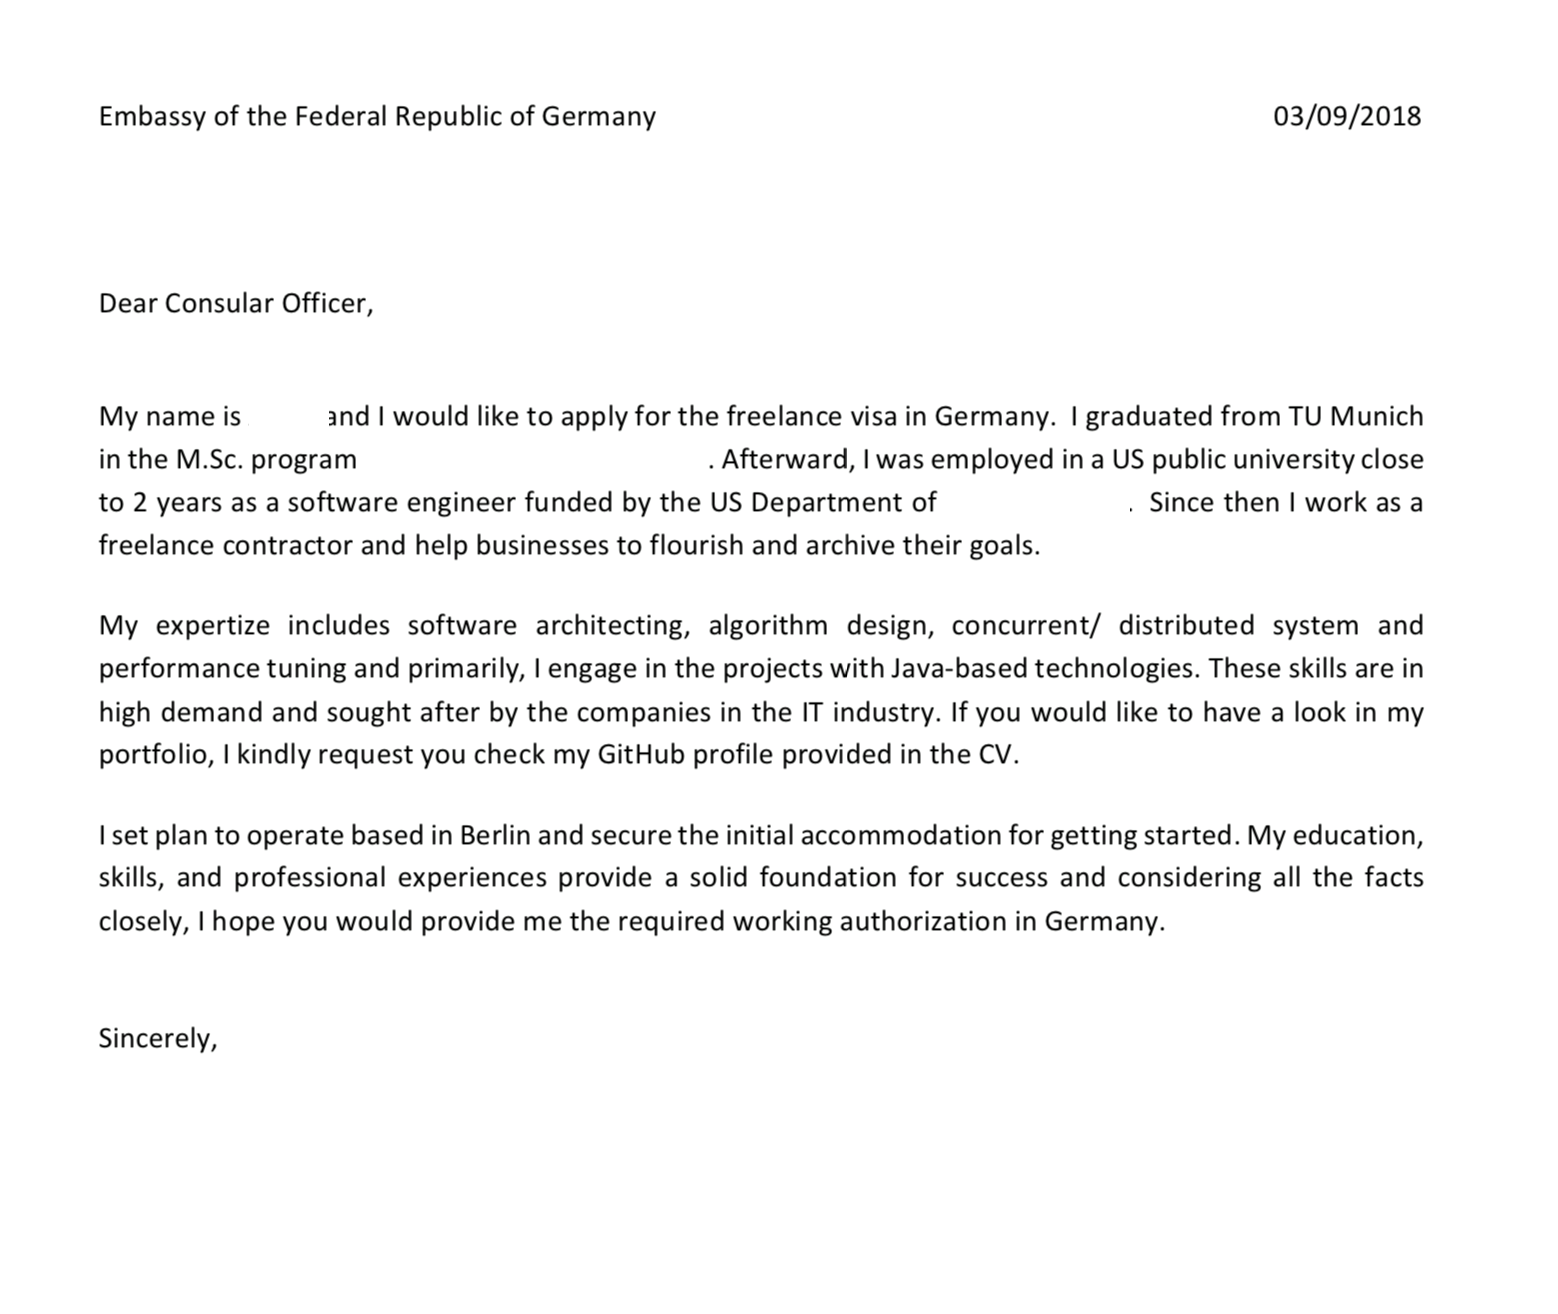 cover letter template germany  Cover letter for the German freelance visa - All About Berlin